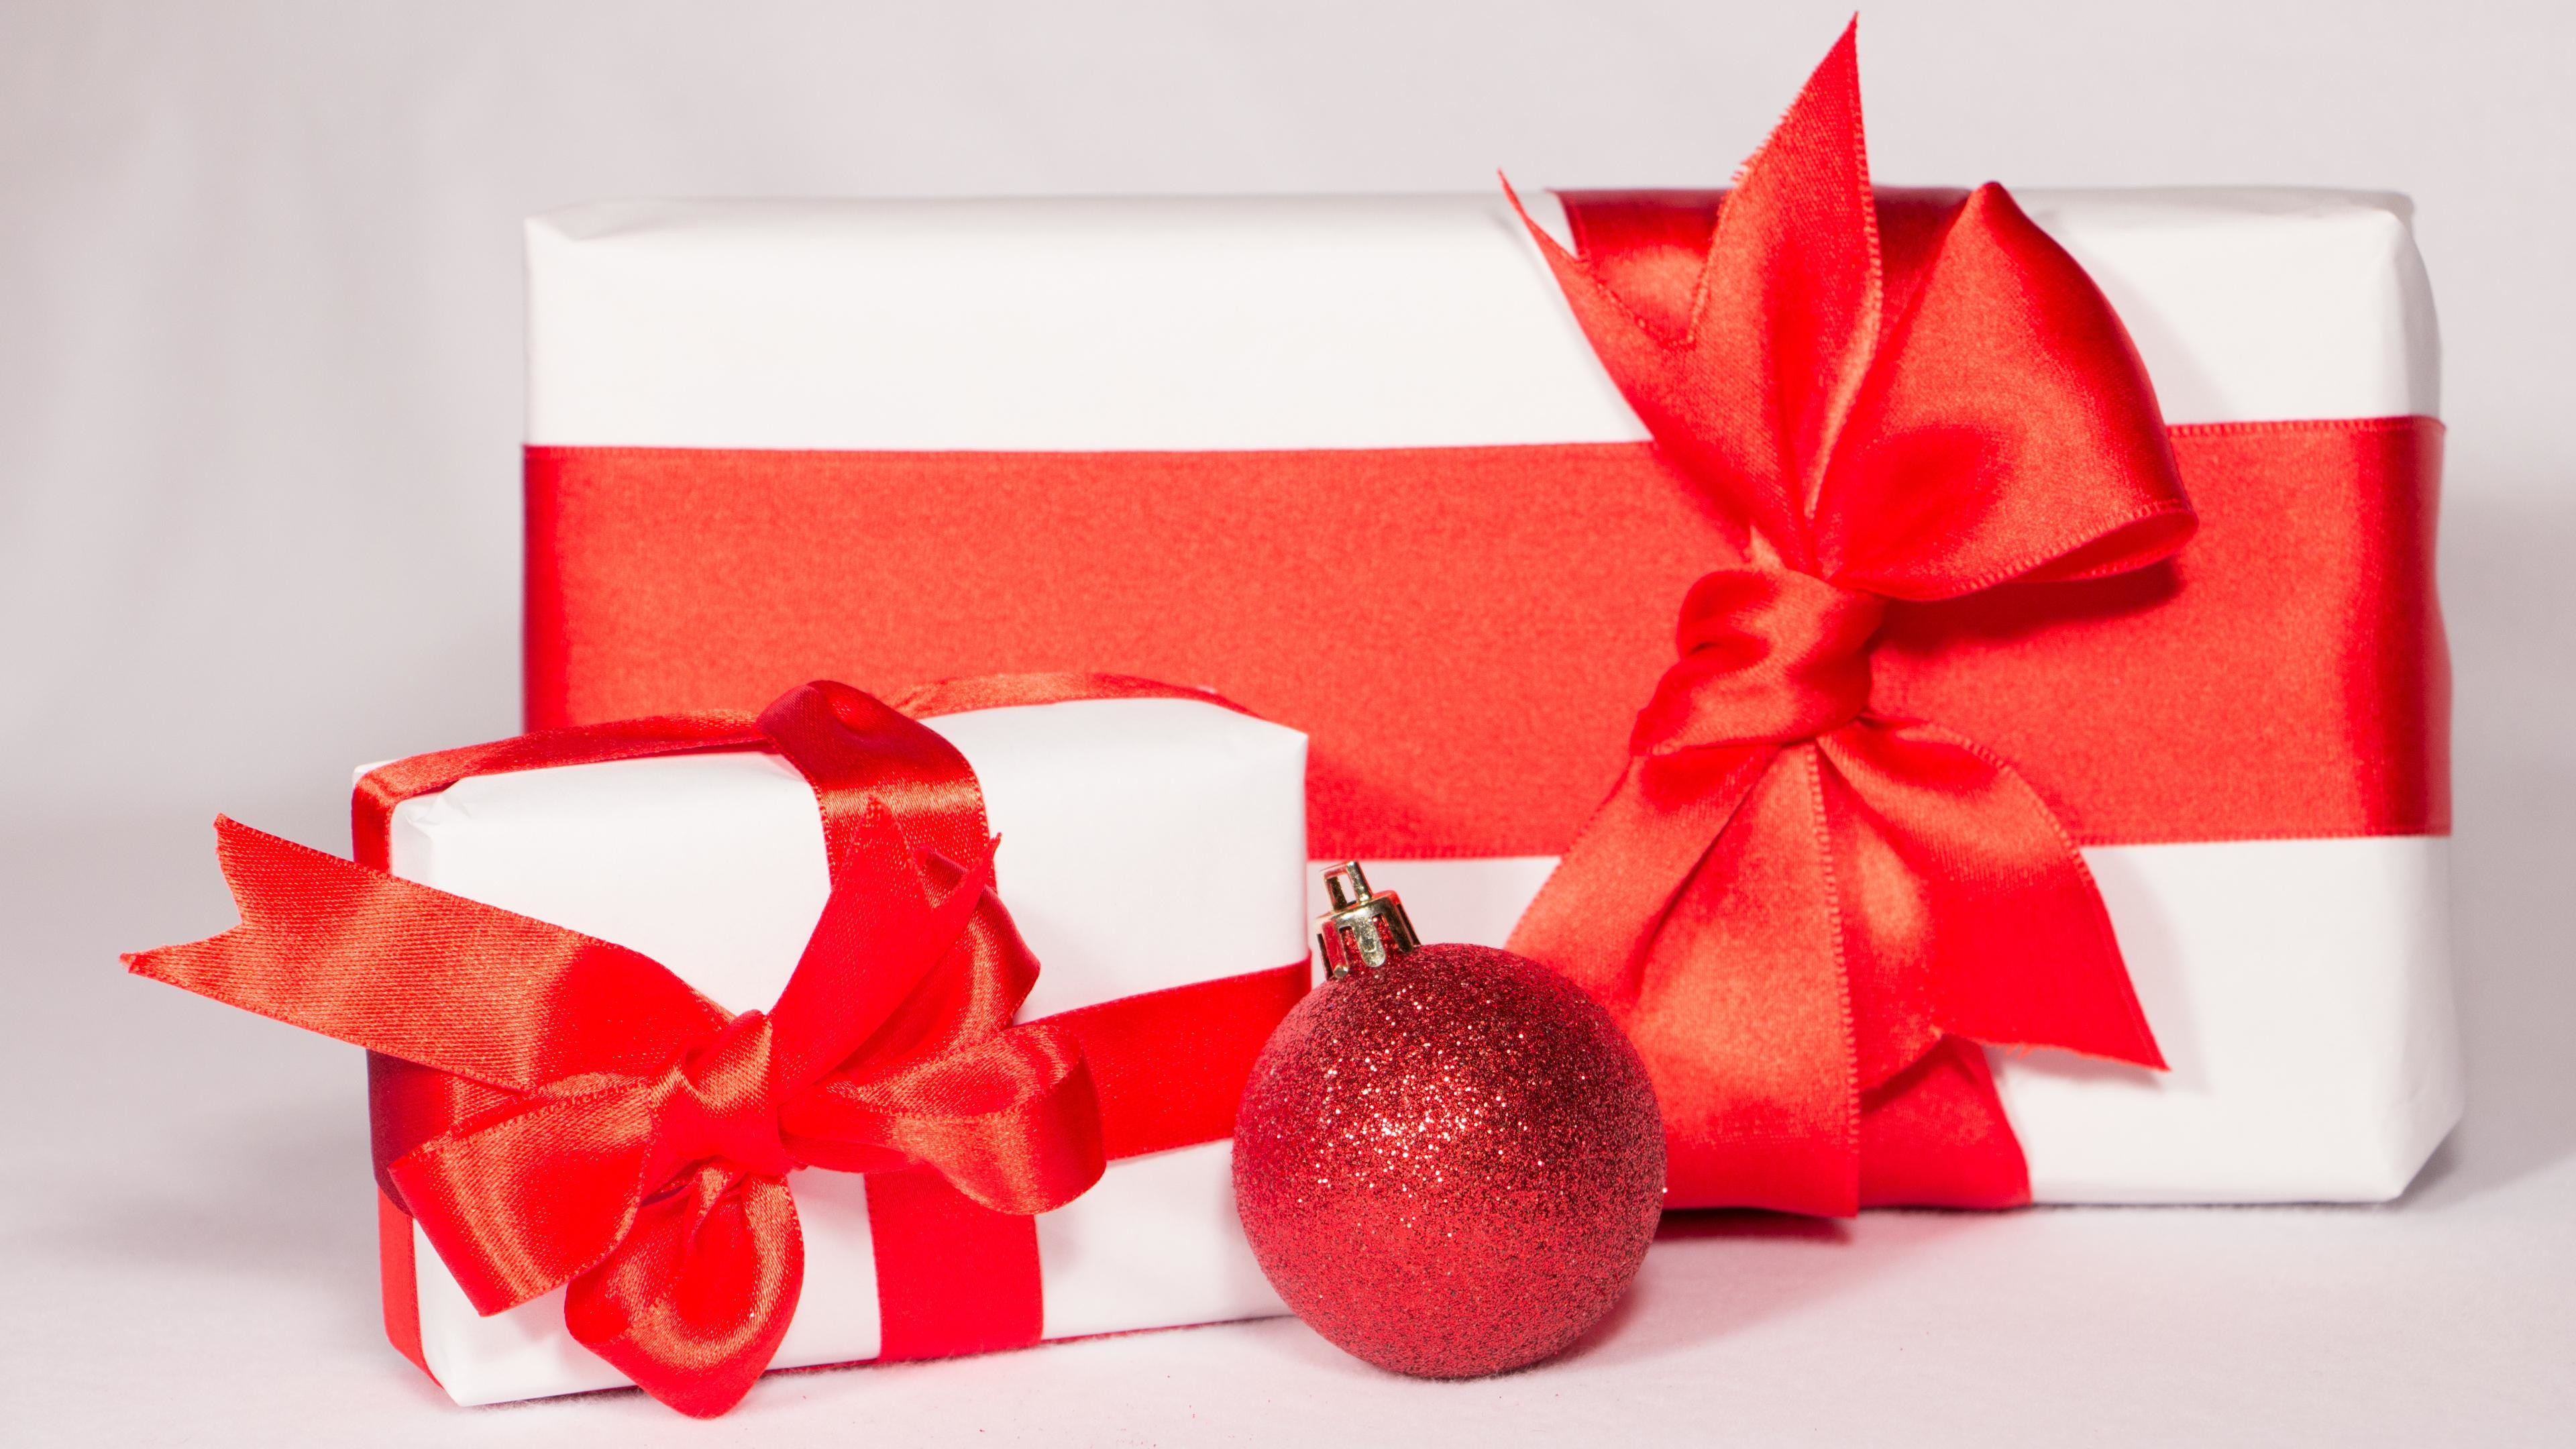 Res: 3840x2160, Christmas presents with a red bauble